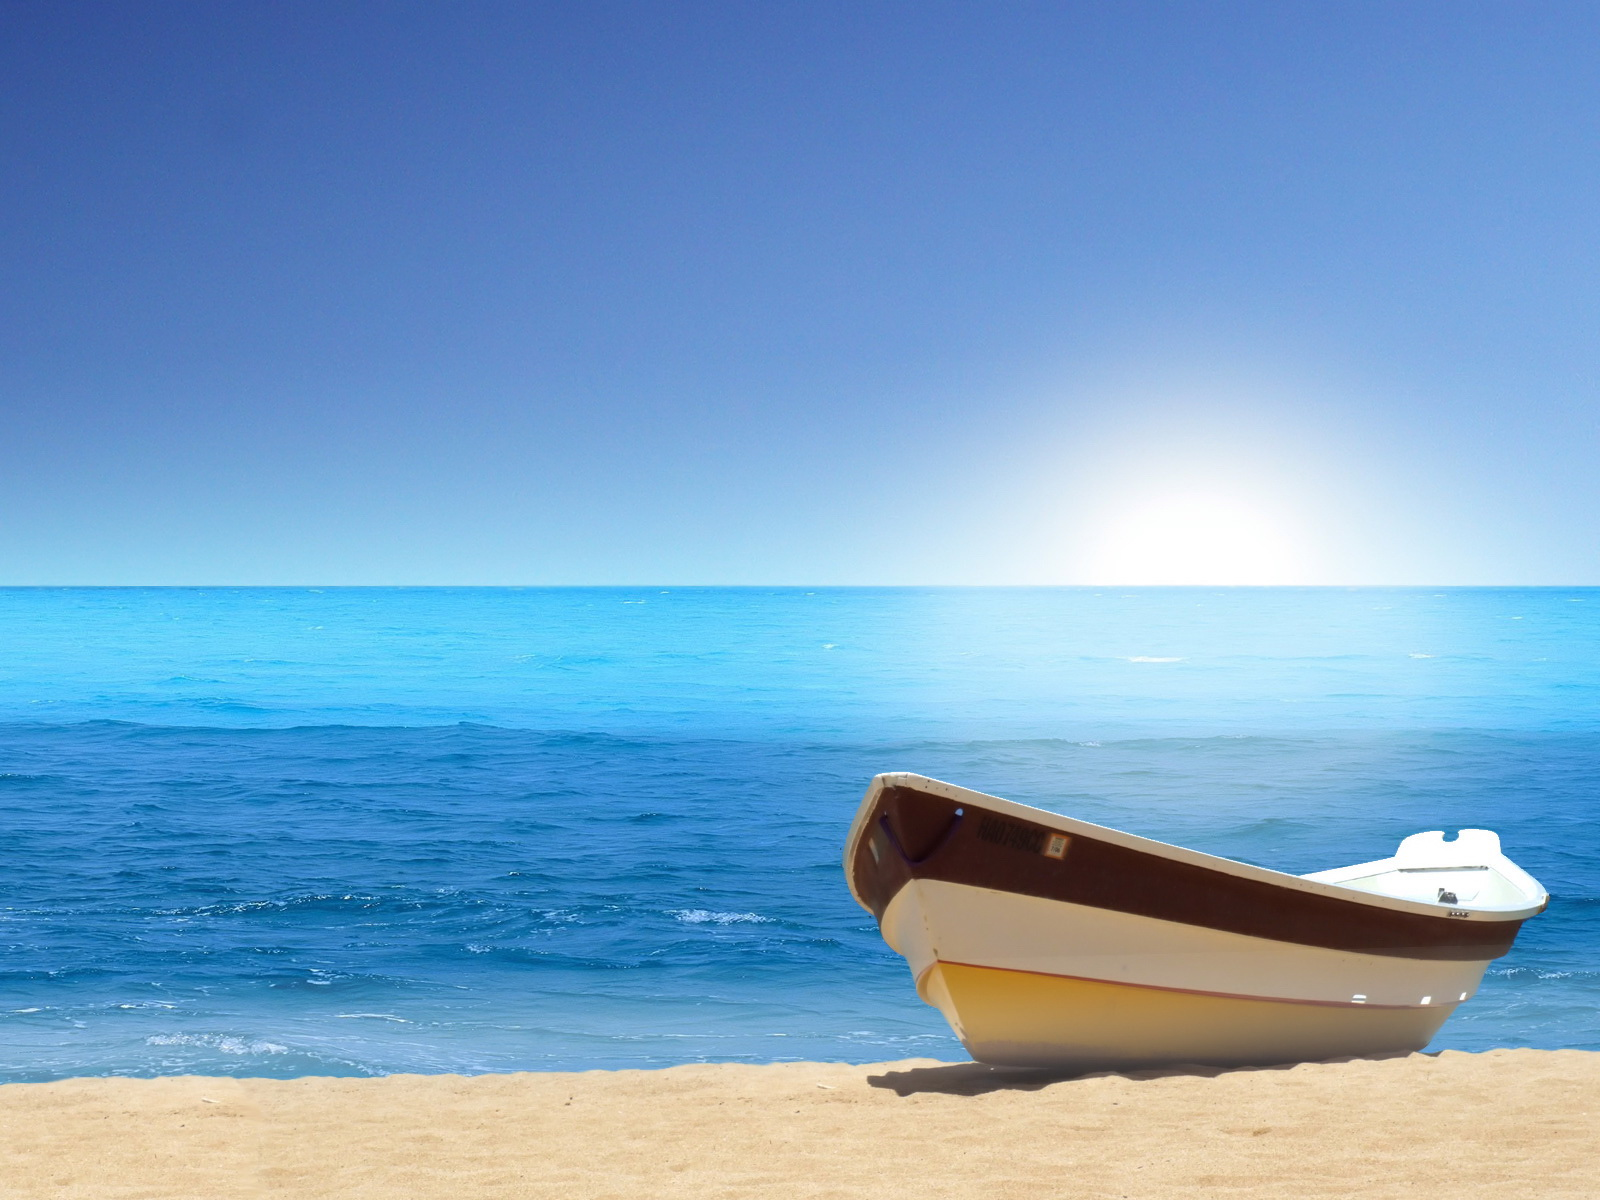 http://1.bp.blogspot.com/_b_dWltgJrqI/TSv8eRqkL5I/AAAAAAAAAMM/hs6aJiOmNoc/s1600/boat-sea-and-sun-beautifull-hd-wallpaper.jpg